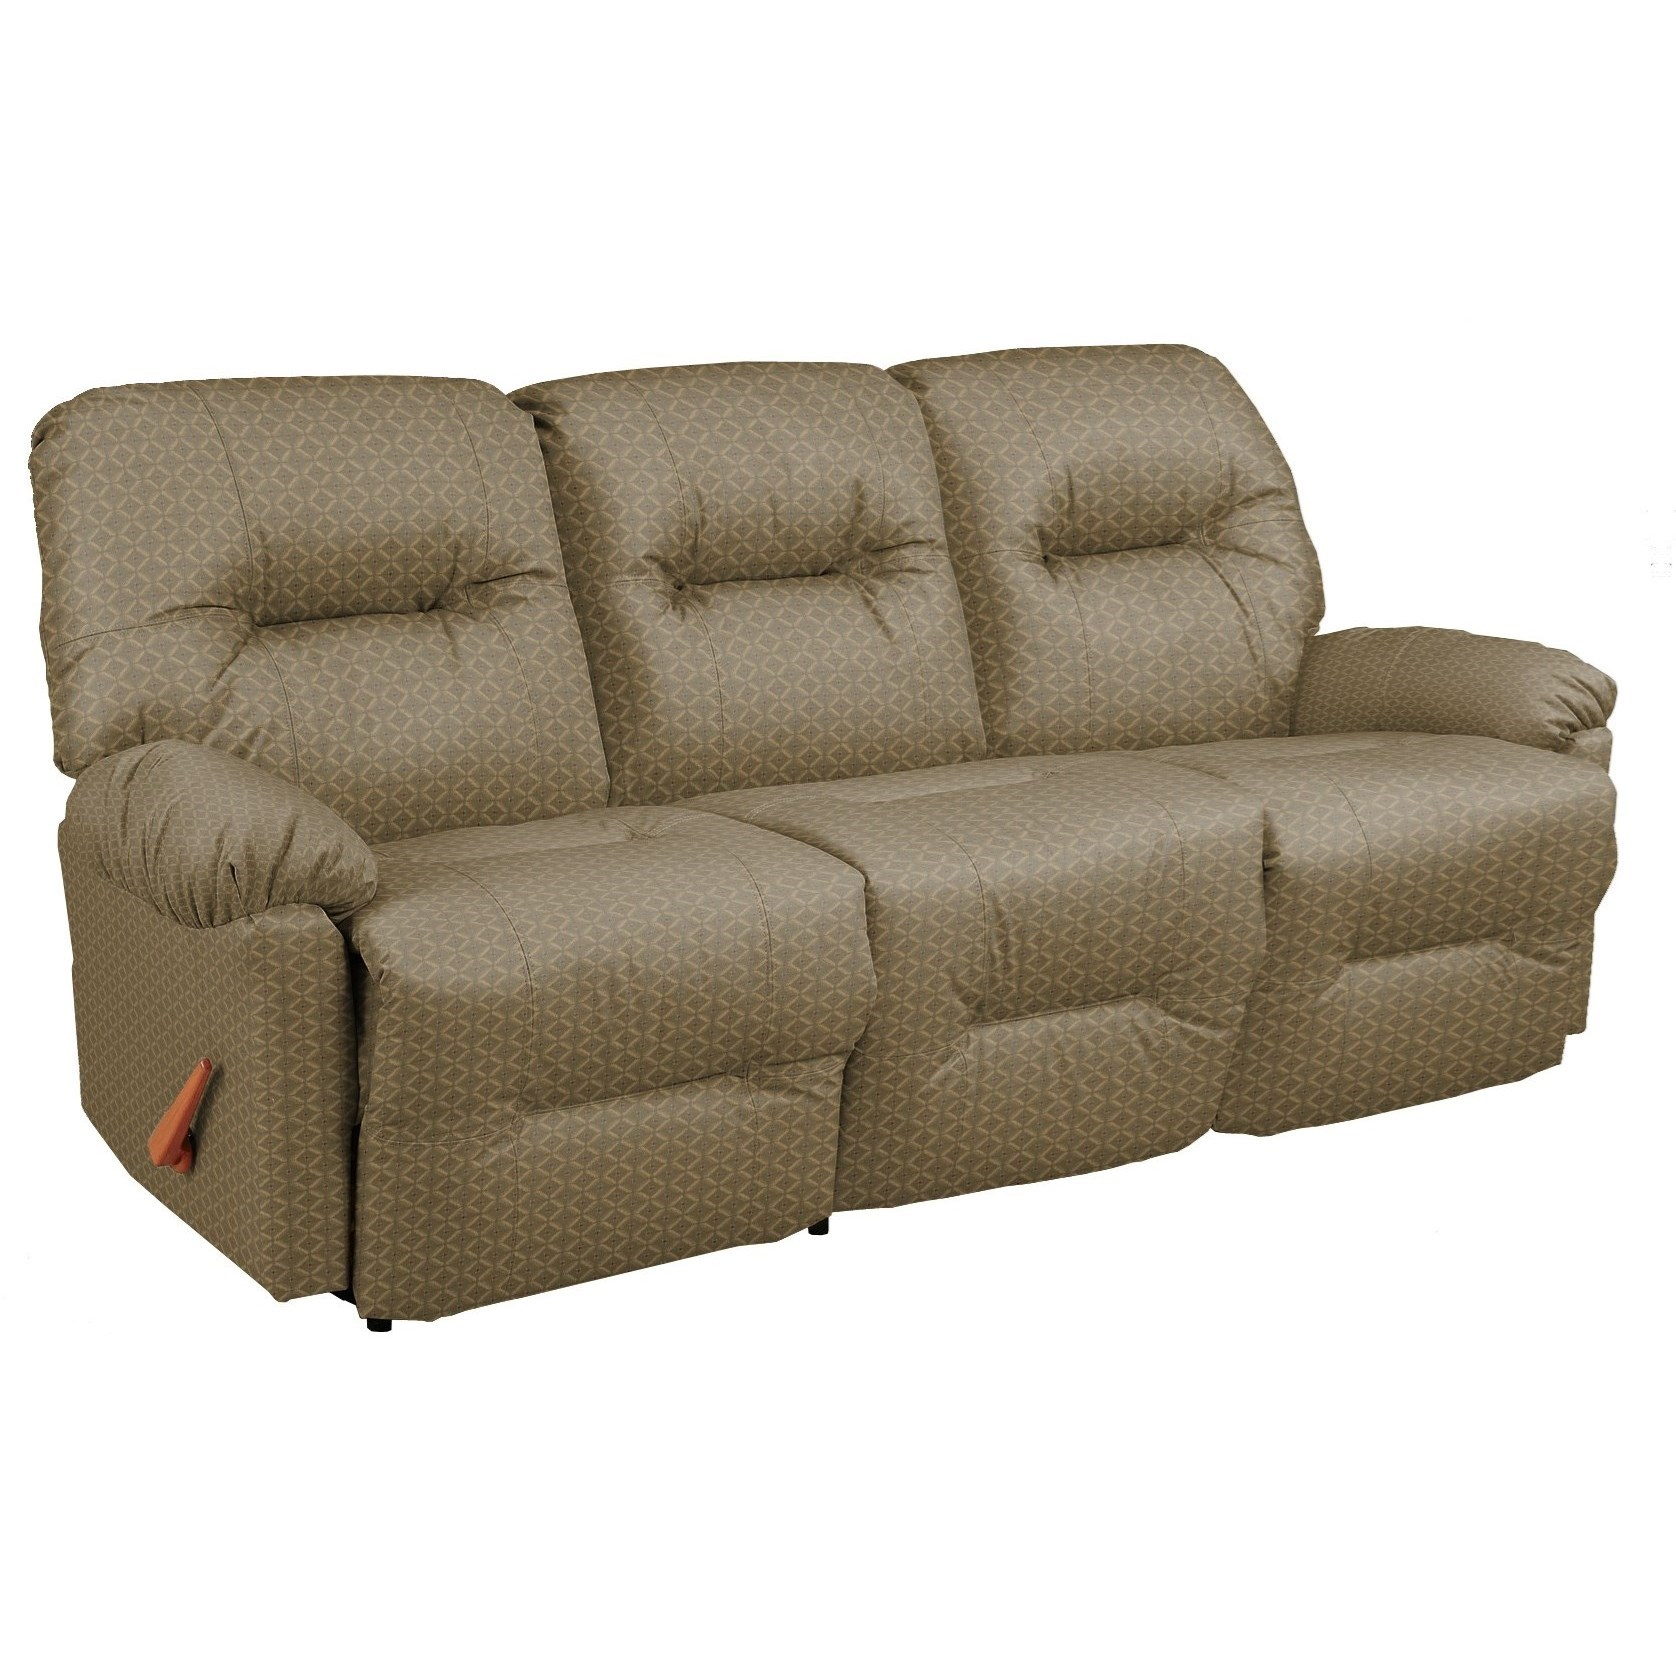 Best Home Furnishings Redford Reclining Sofa - Item Number: -679135843-18021